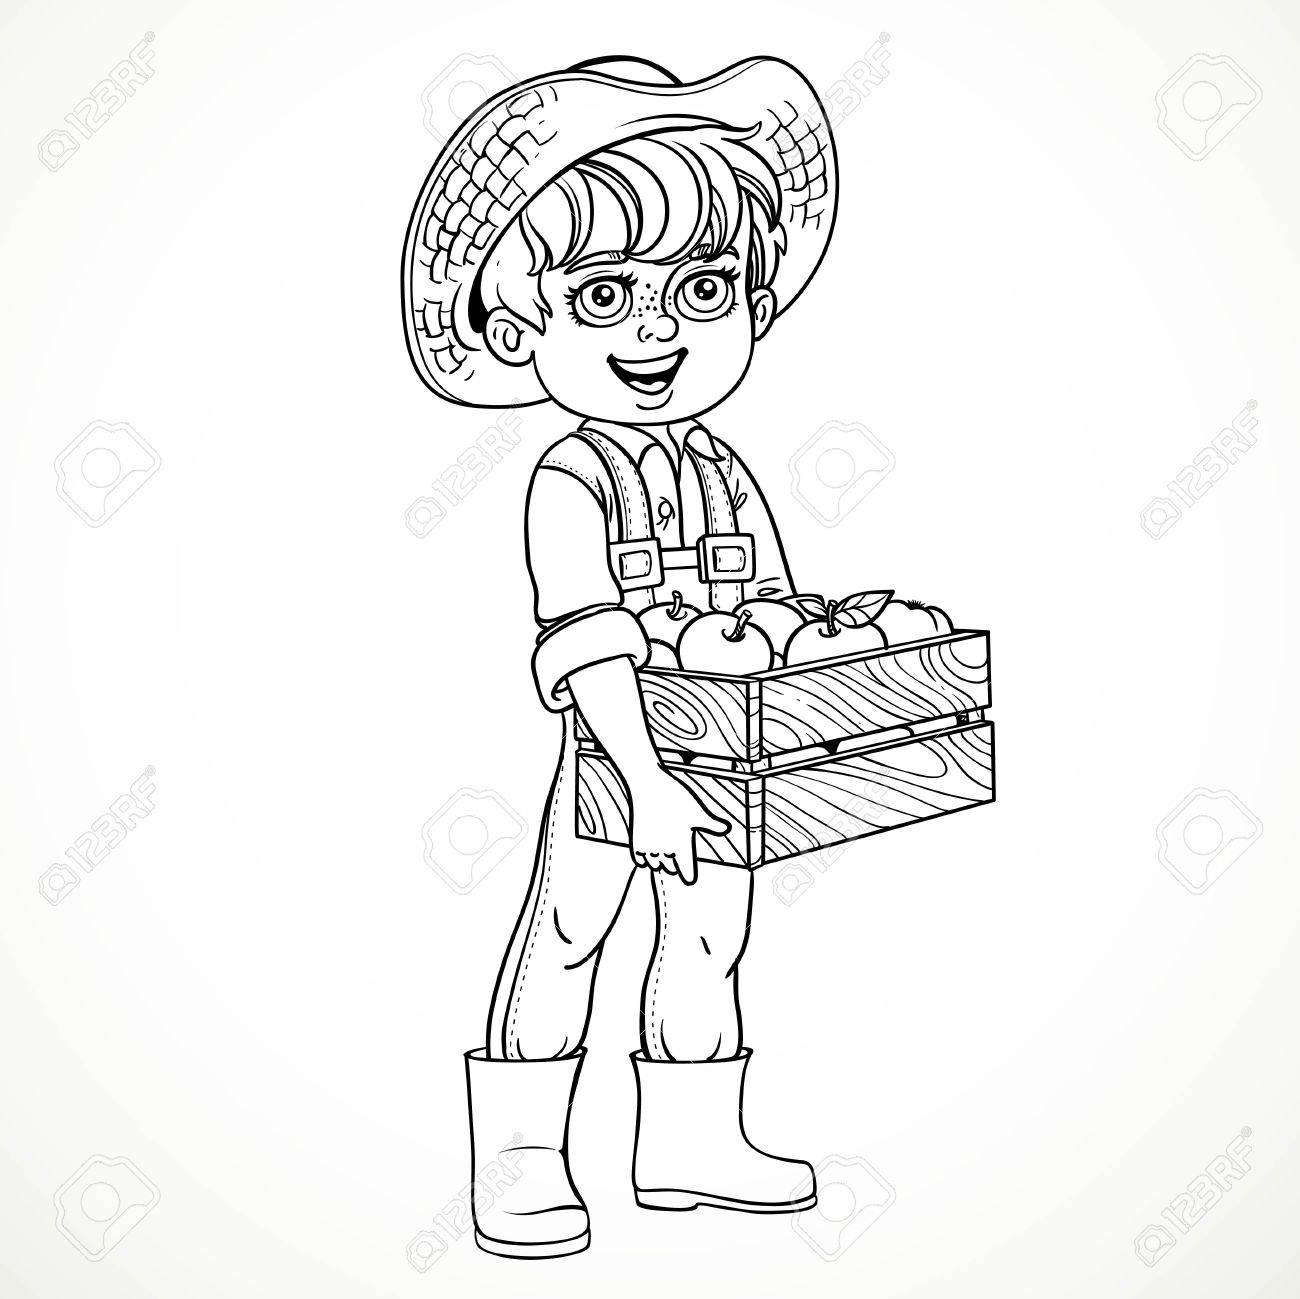 1300x1299 Cute Boy Farmer In Jeans Overallsnd Rubber Boots Holding